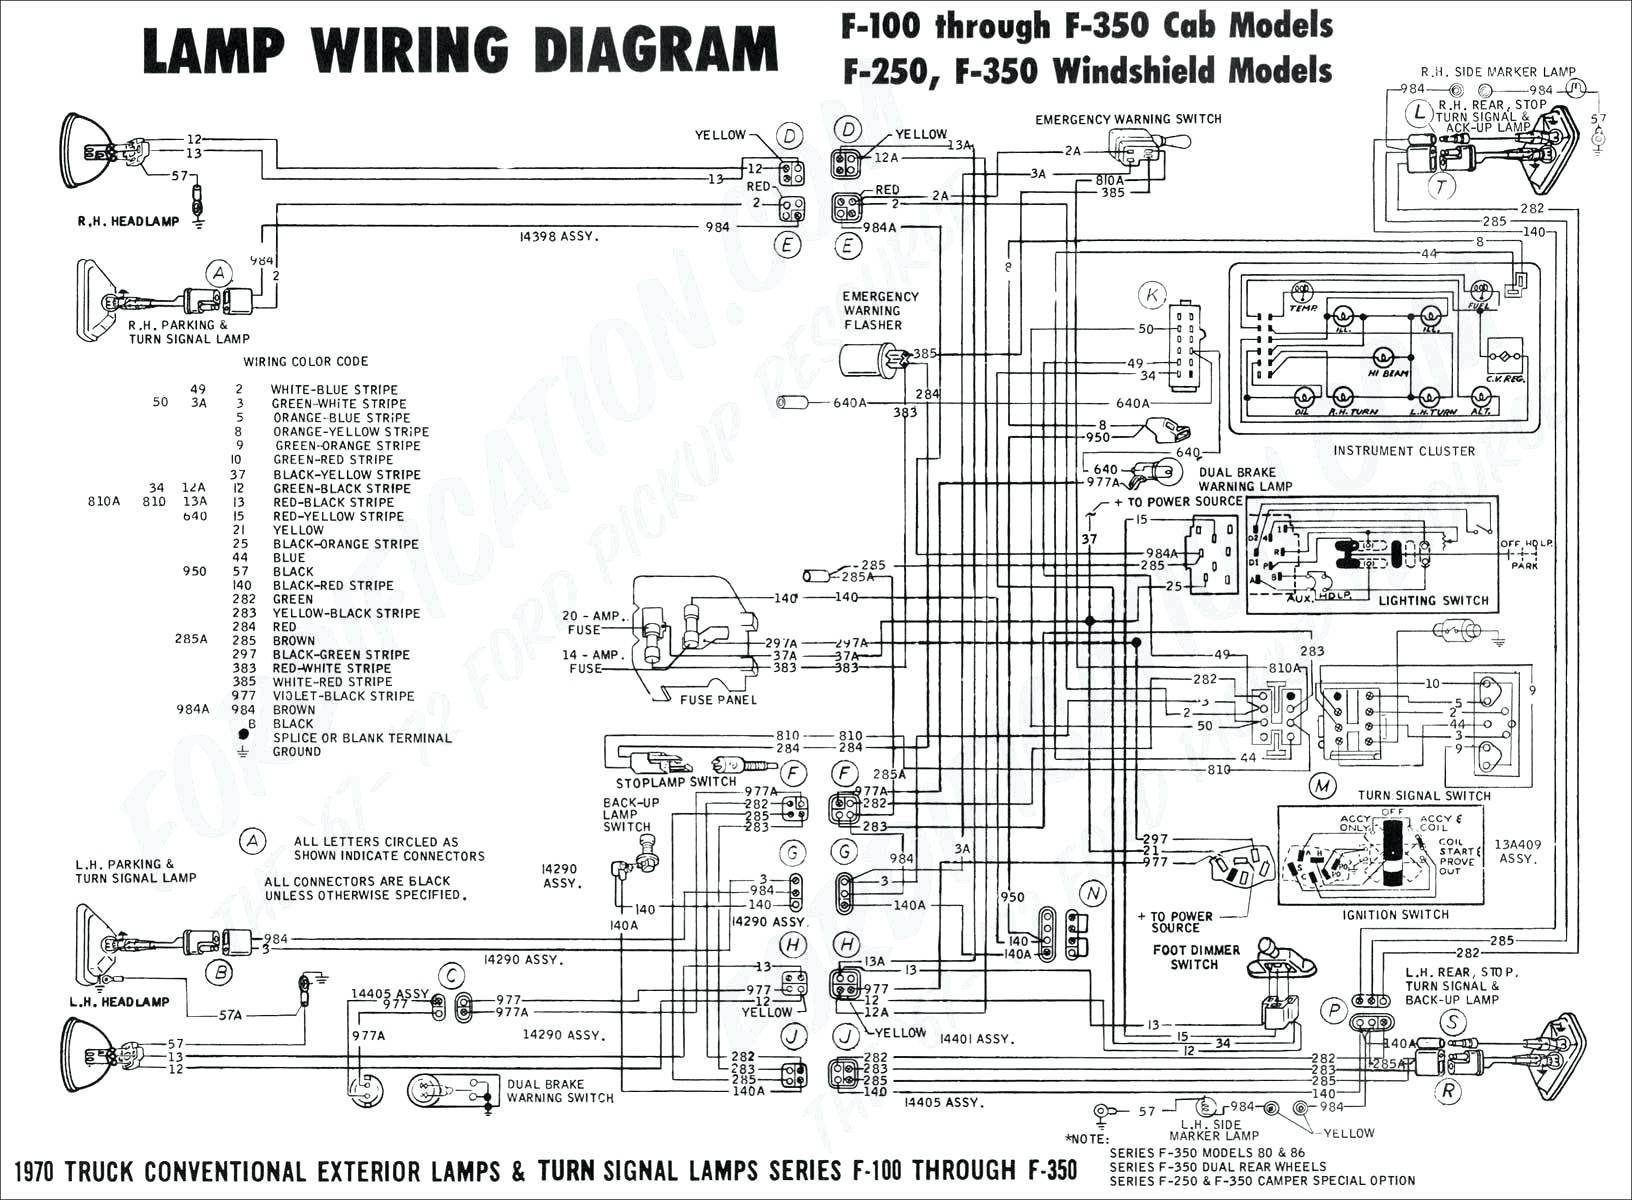 Best Of 2008 Chevy Silverado Tail Lights Trends   Chevy Models & Types - 2005 Chevy Silverado Tail Light Wiring Diagram